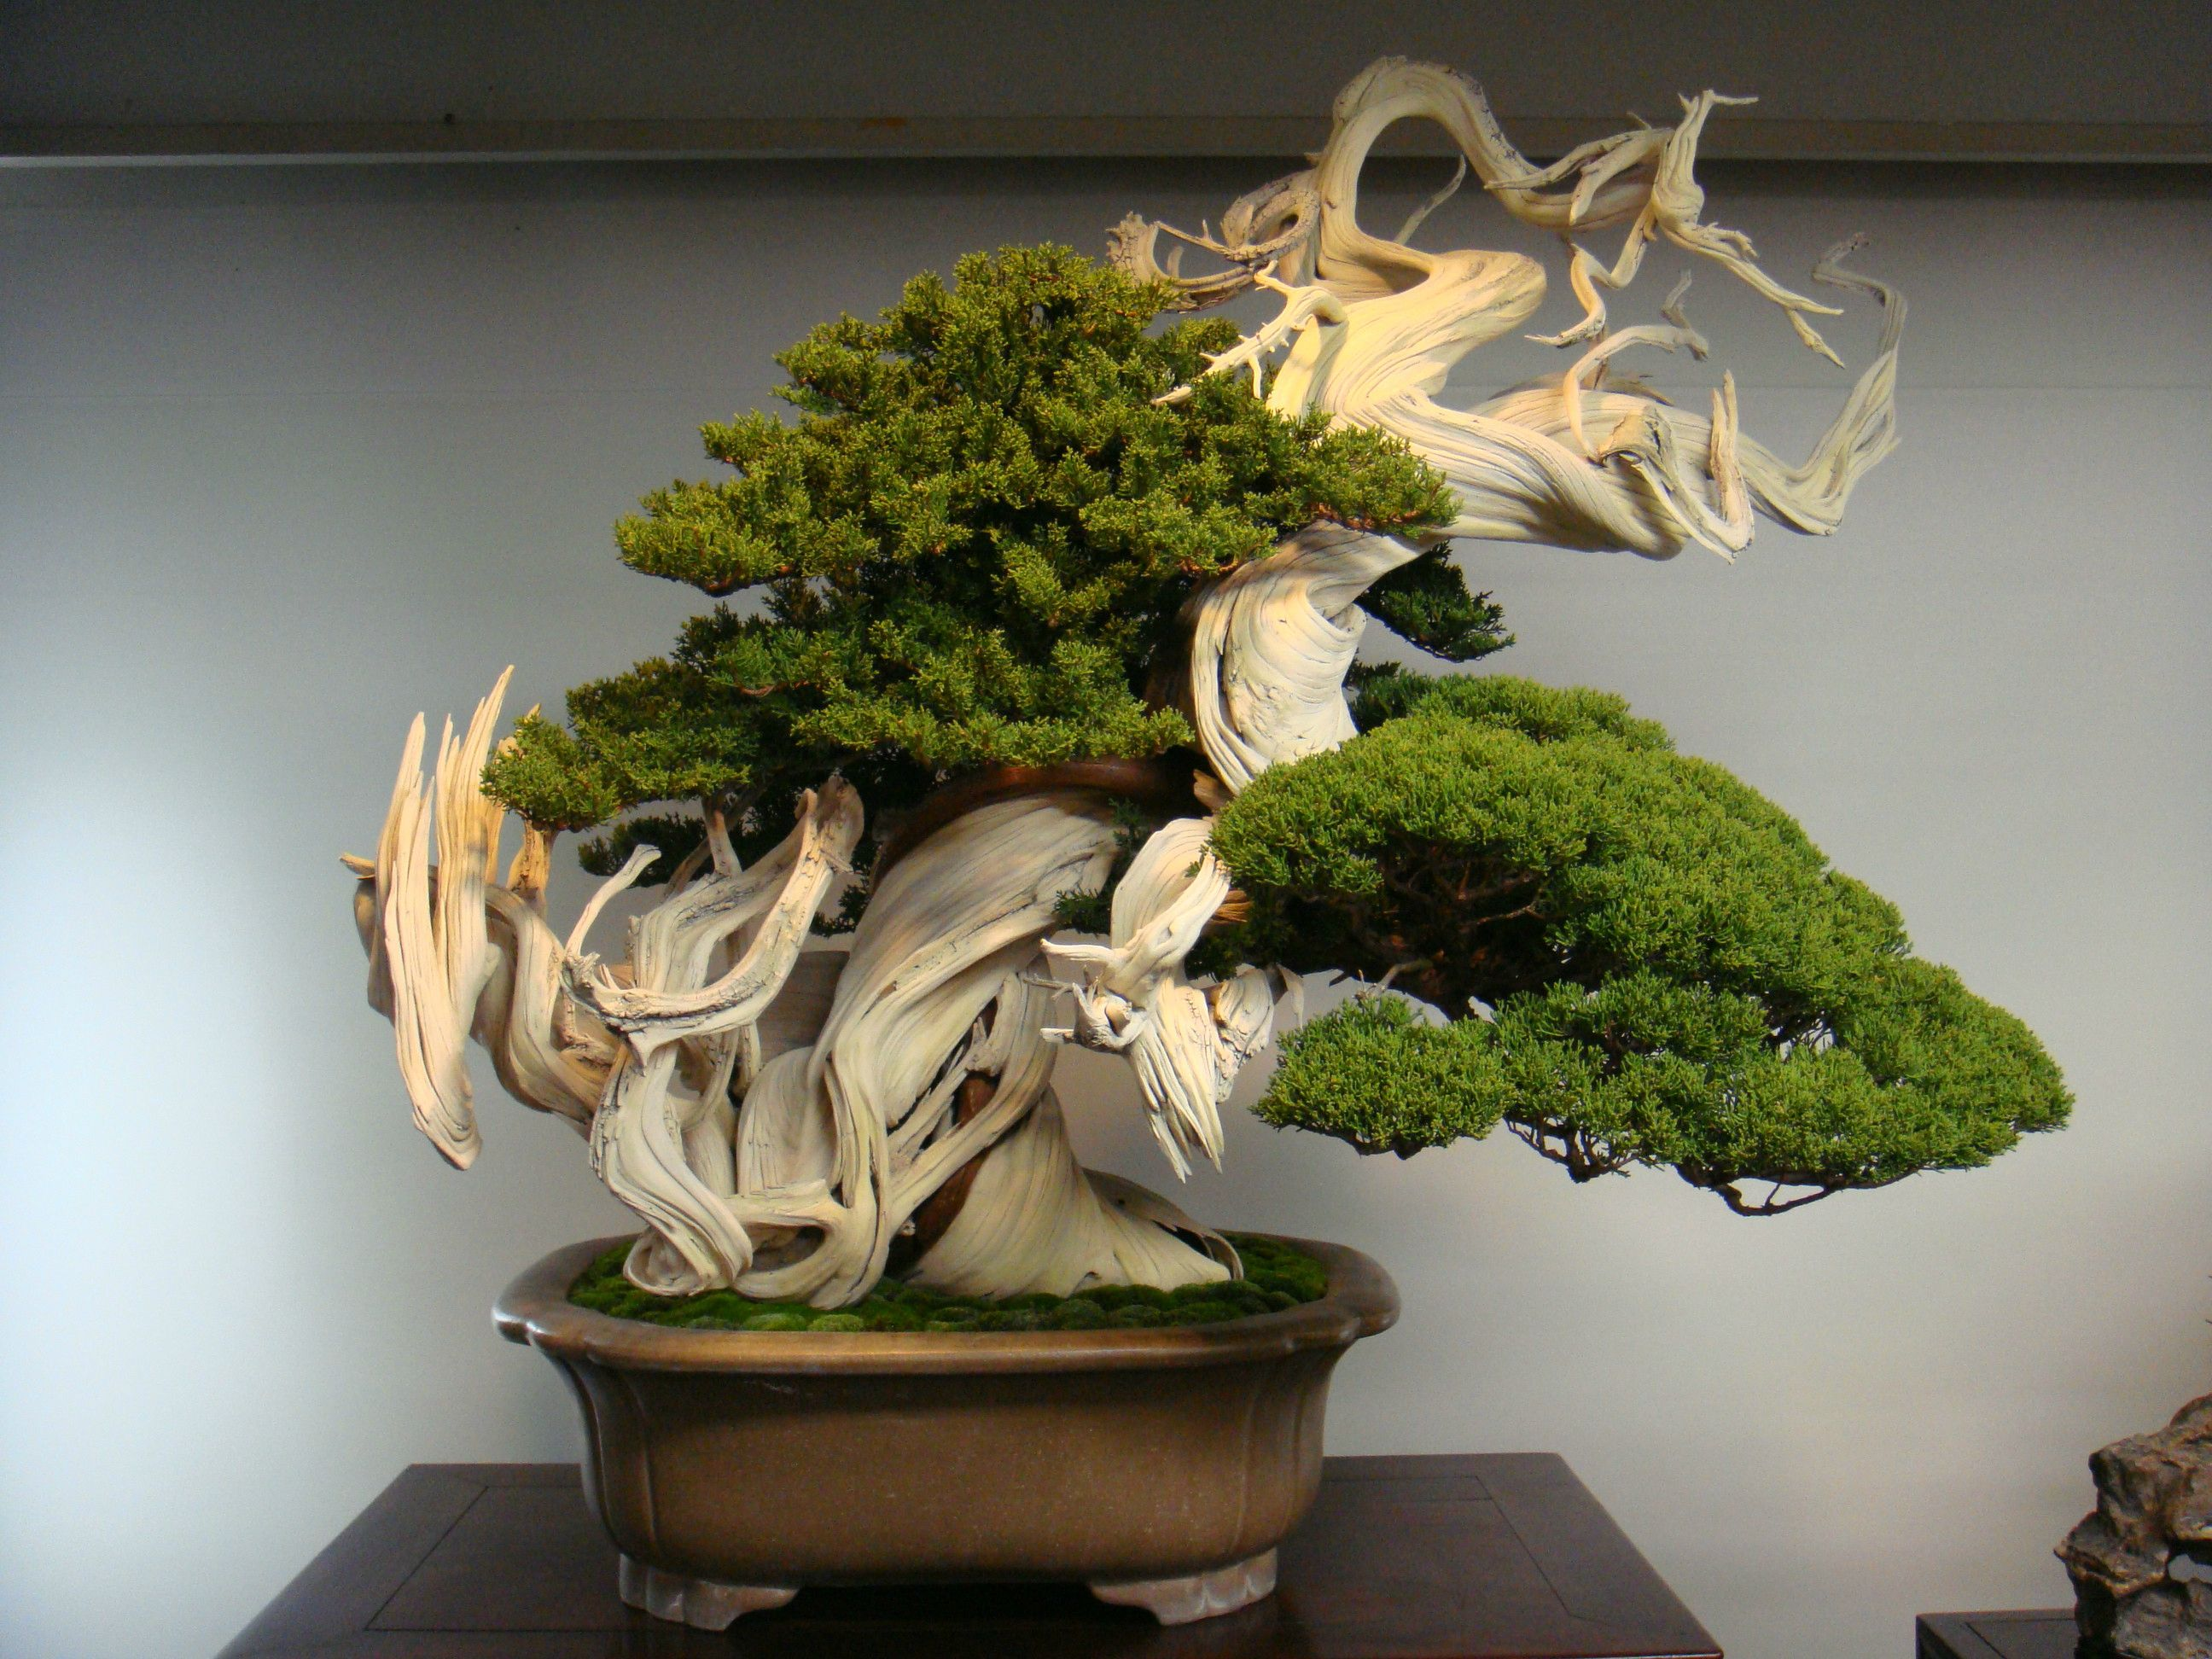 This 800 year old Bonsai is beautiful